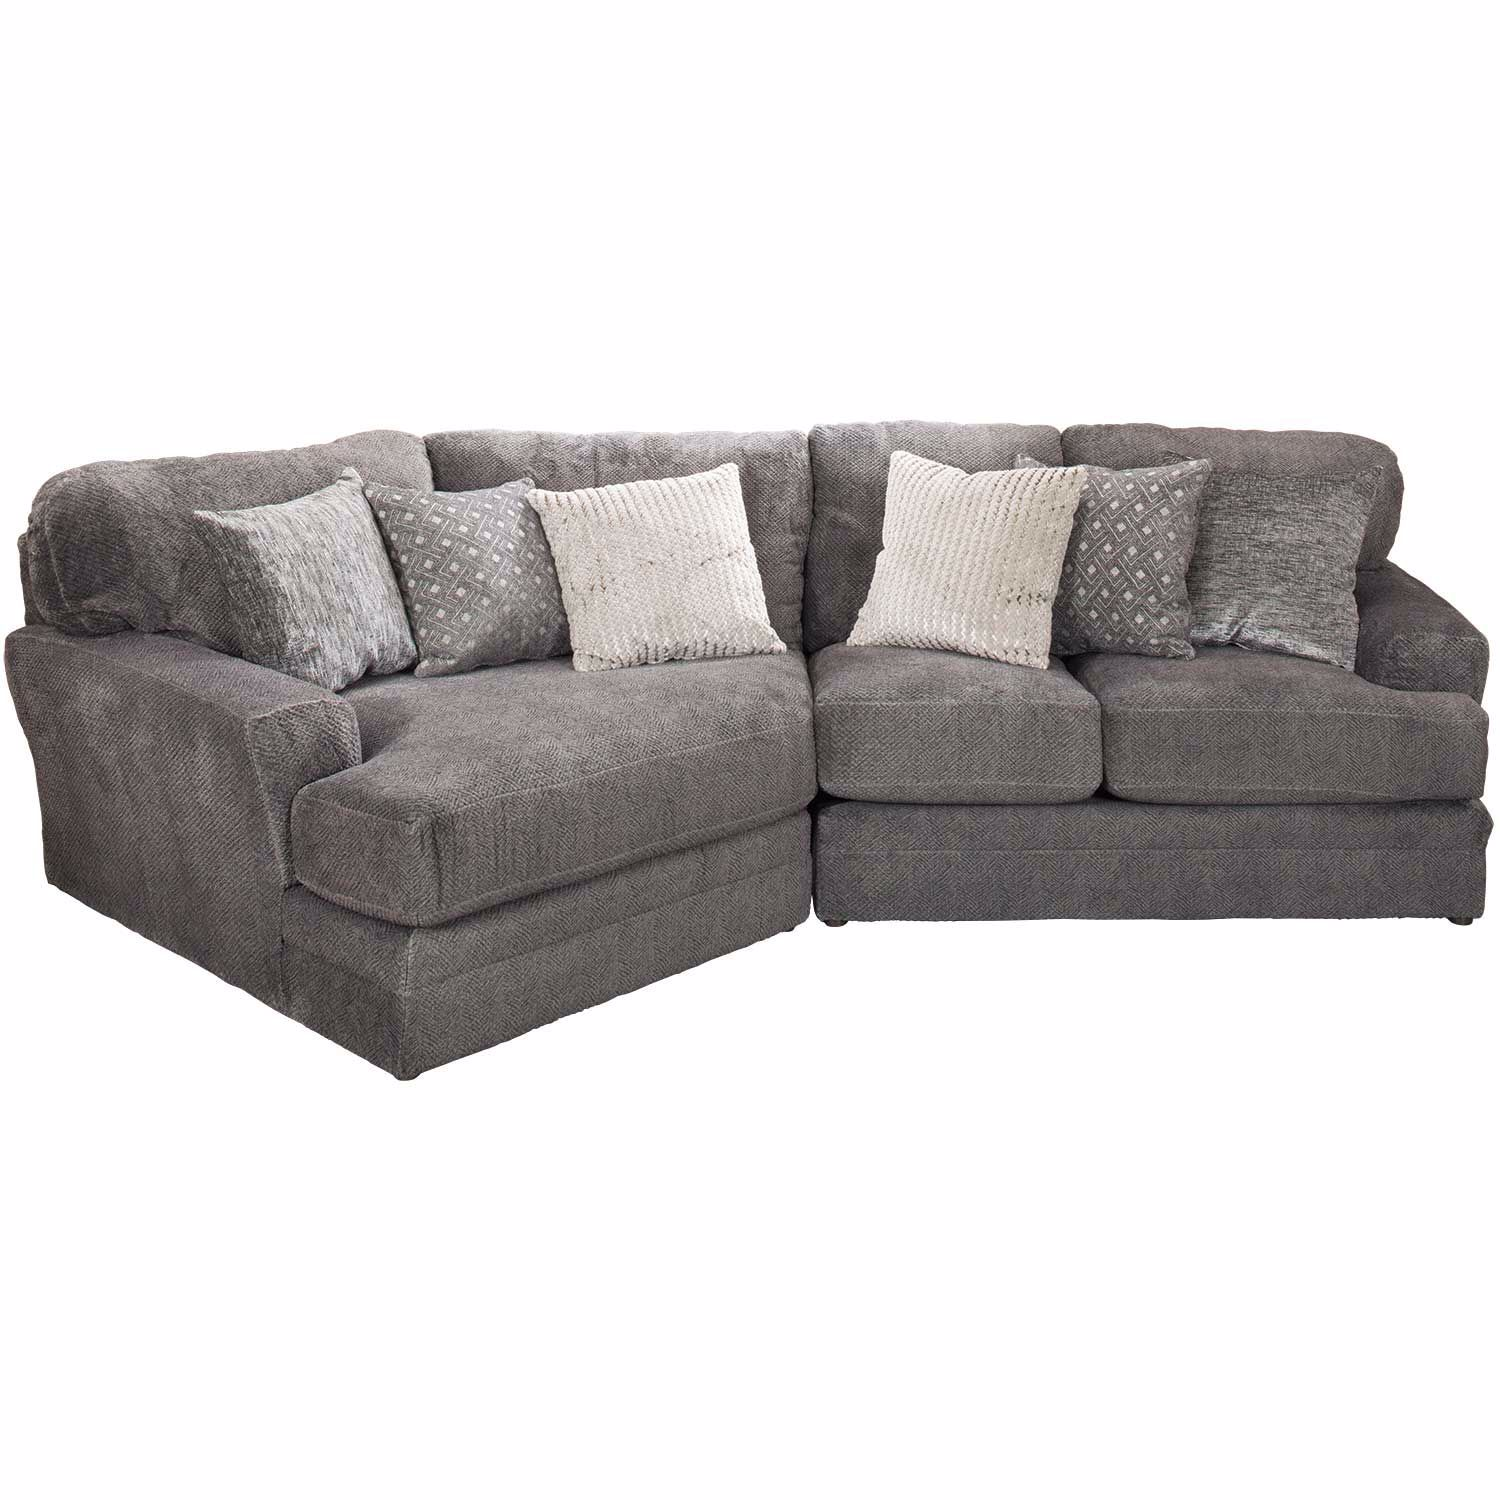 Mammoth 2 Piece Sectional with LAF Wedge | 4376-92-42 | Jackson ...